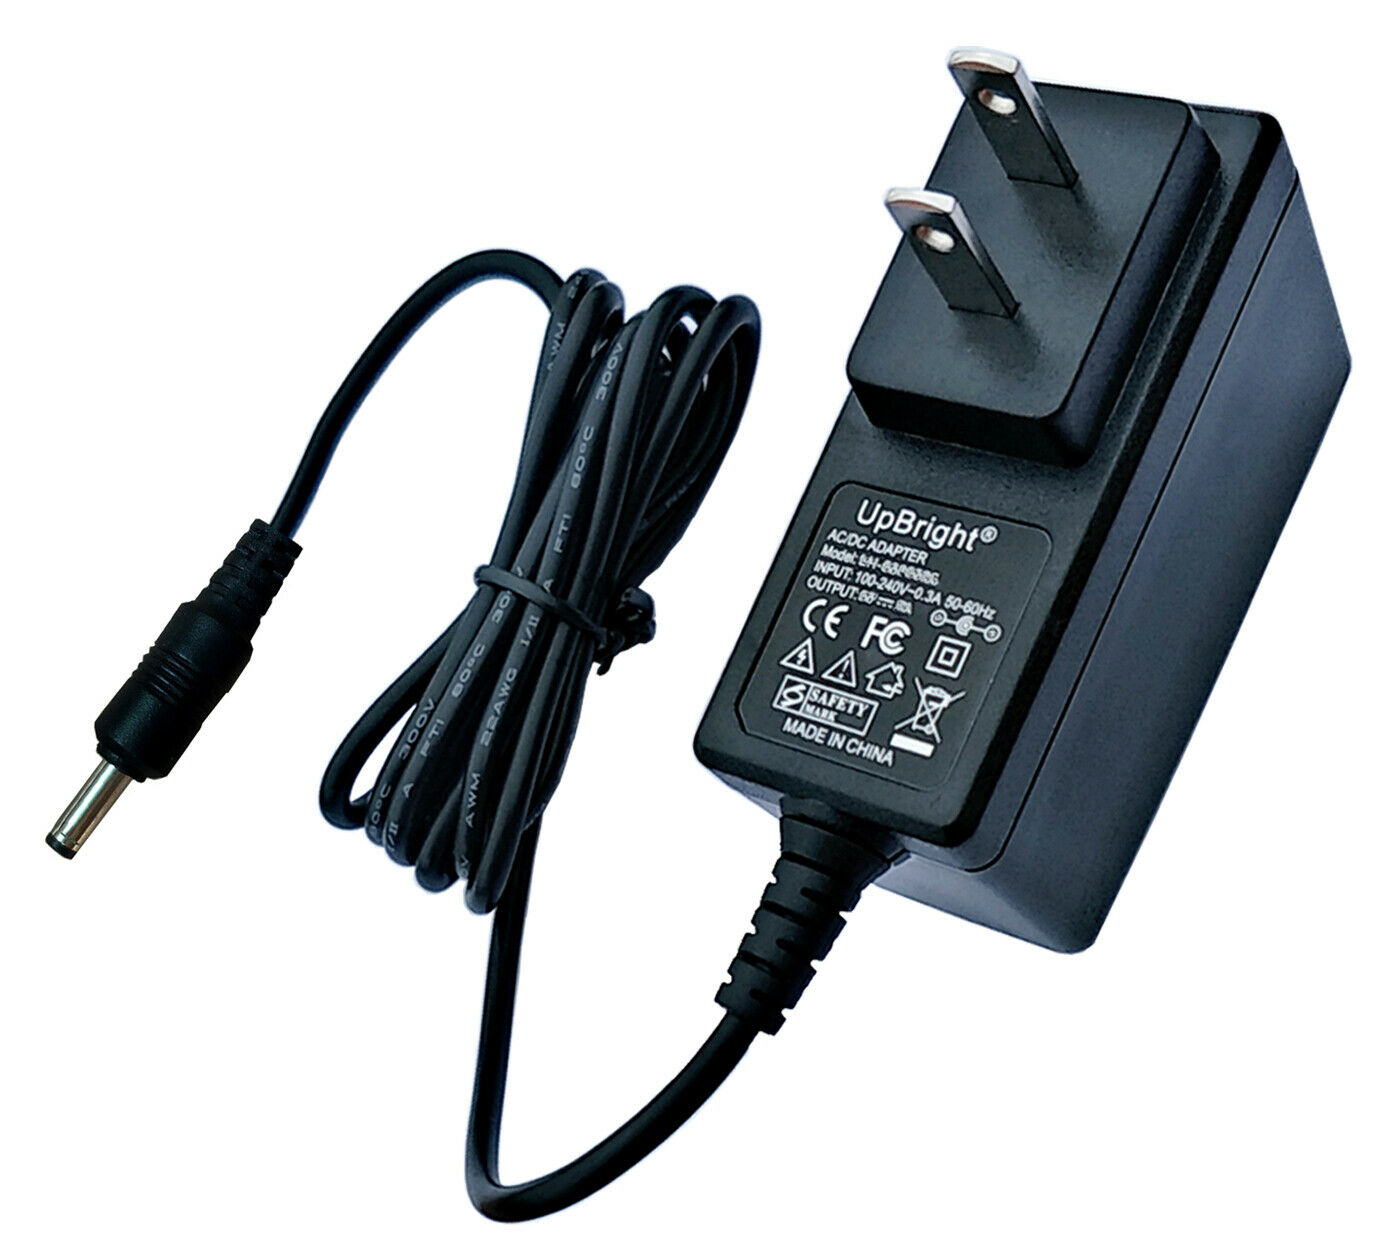 Accessory USA AC//DC Adapter for Sharp Viewcam VL-AH130U VL-AH130 LCD Camcorder Power Supply Cord PS Wall Home Charger Mains PSU 5FT Cable